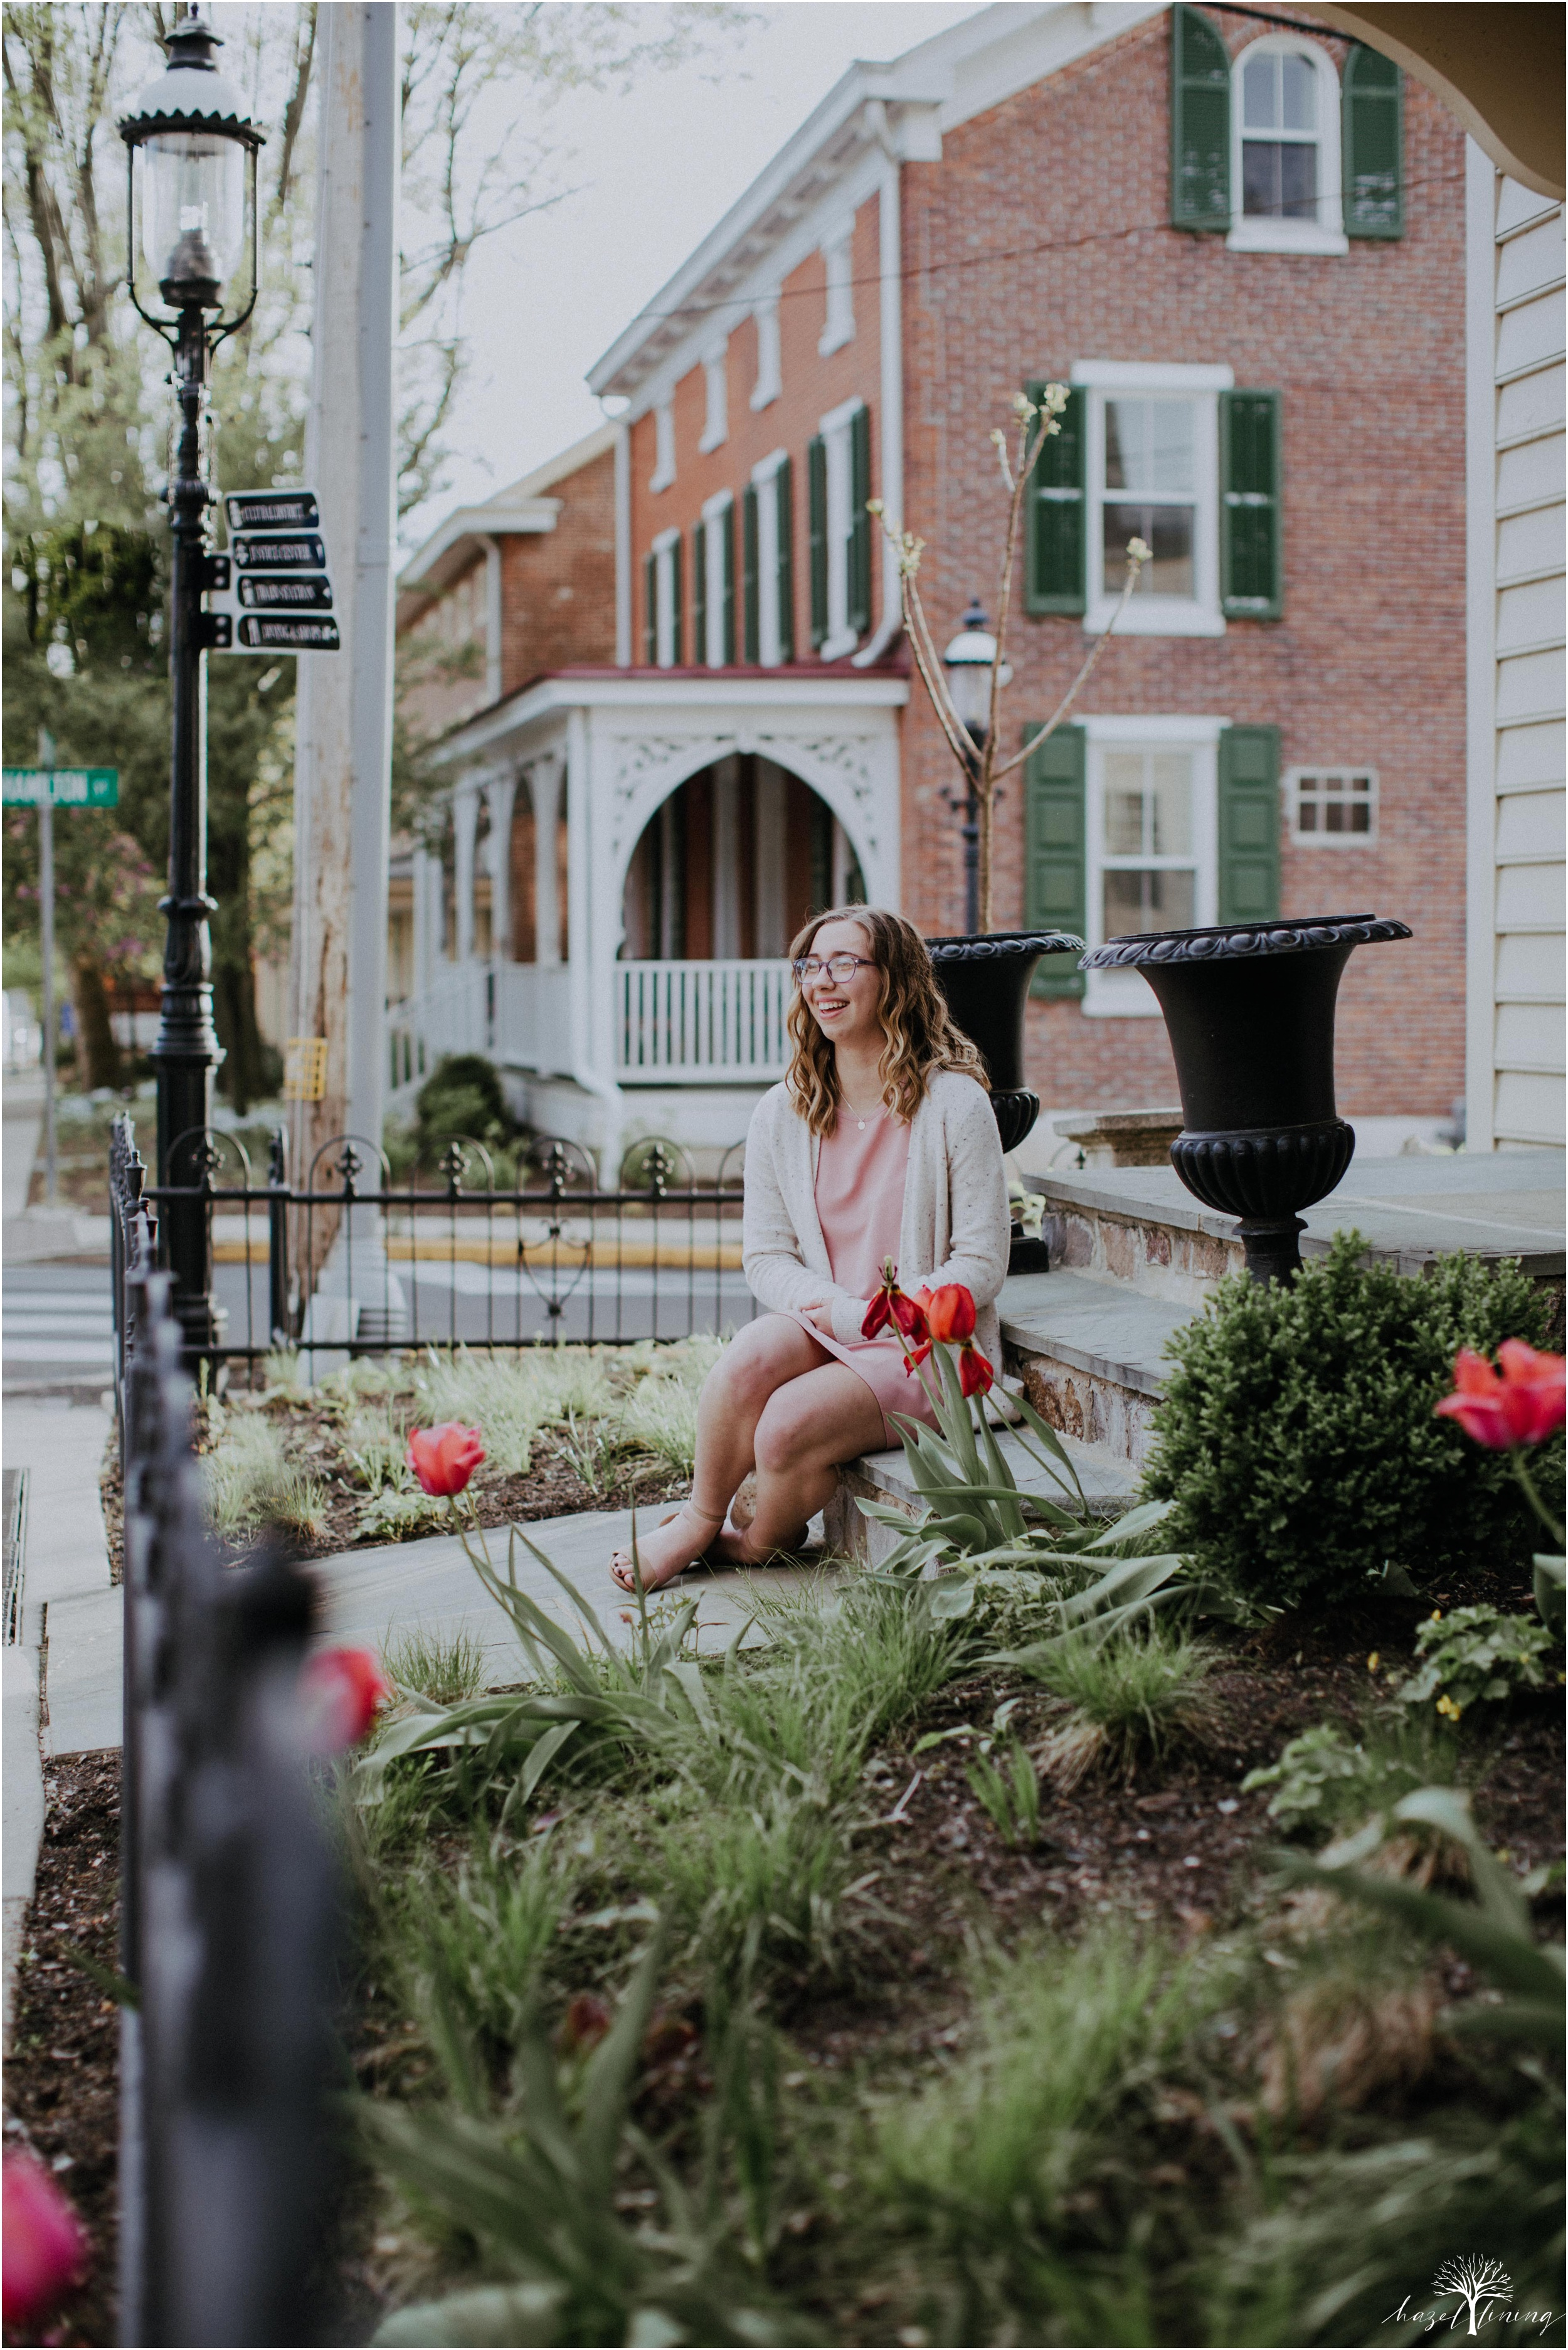 maddie-kiser-senior-portrait-session-doylestown-pennsylvania-spring-hazel-lining-photography-destination-elopement-wedding-engagement-photography-year-in-review_0005.jpg